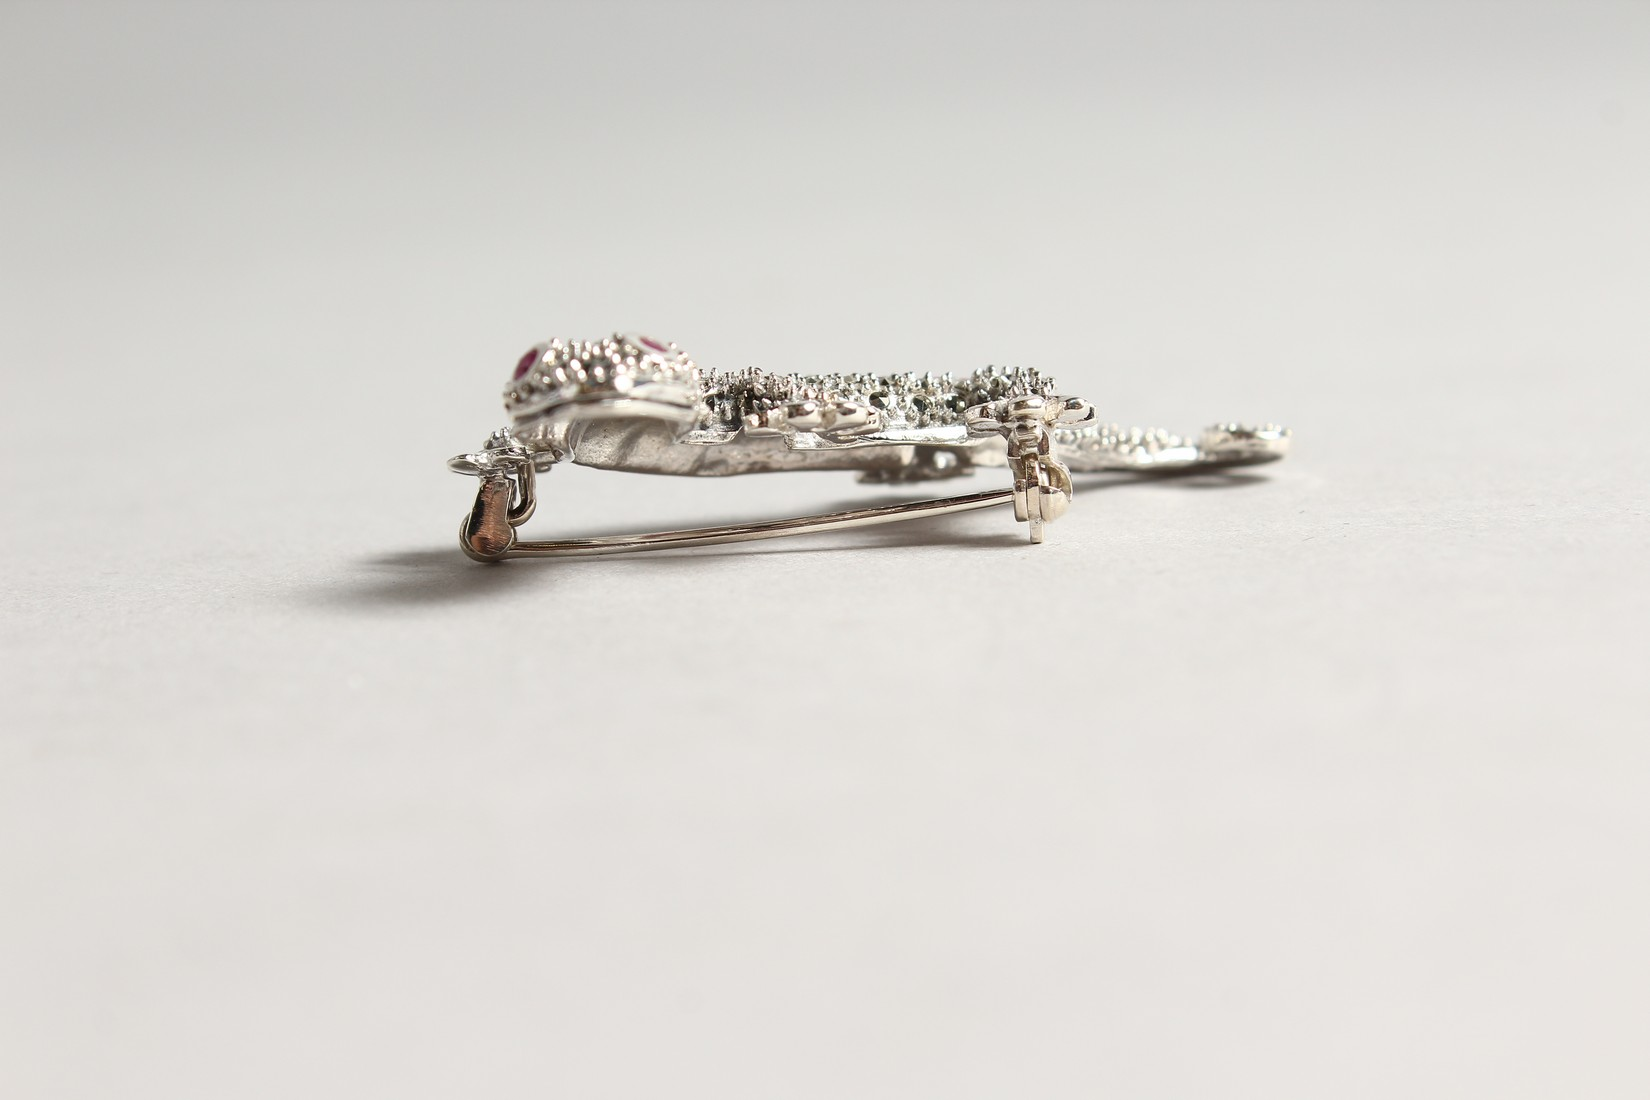 A SILVER MARCASITE AND RUBY LIZARD BROOCH. - Image 2 of 4